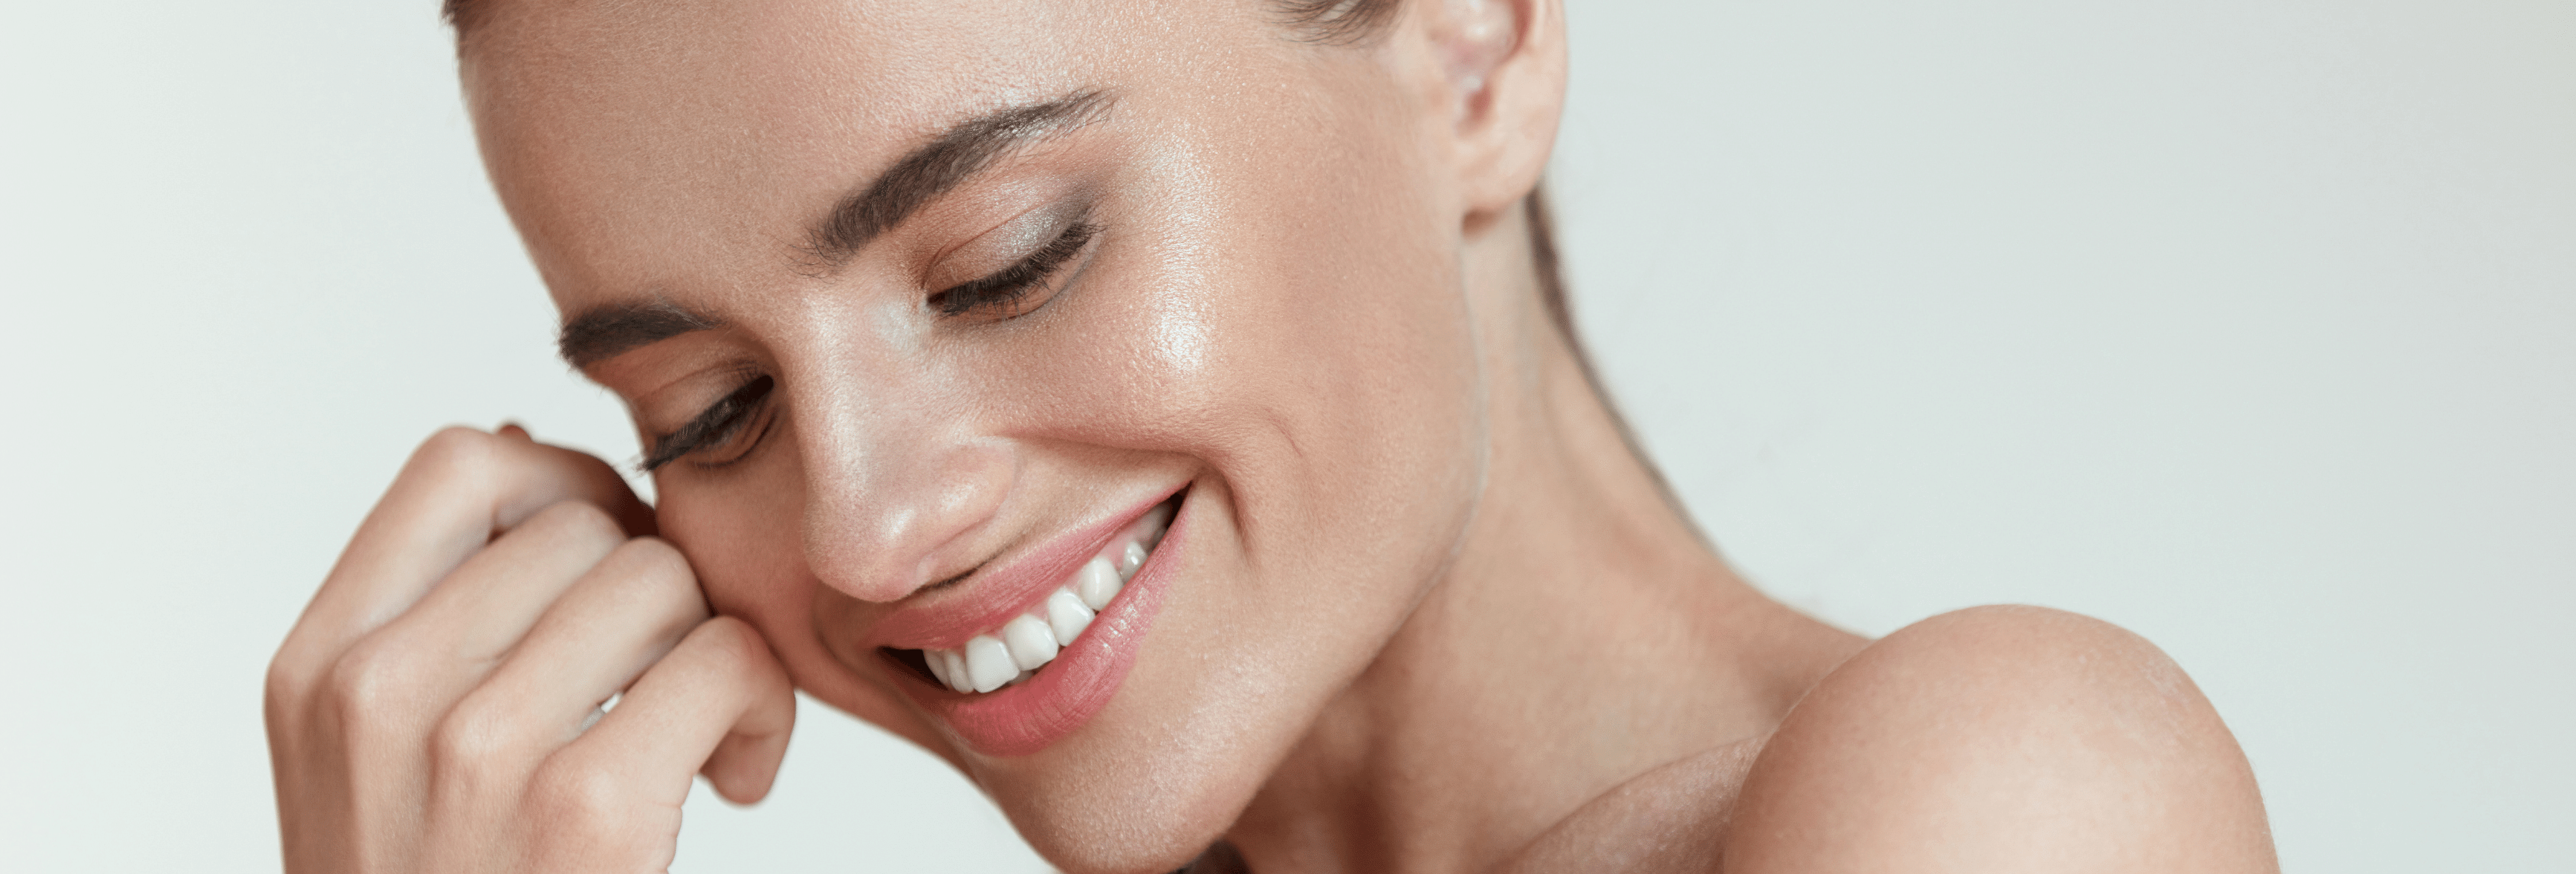 Youthful and Radiant Skin